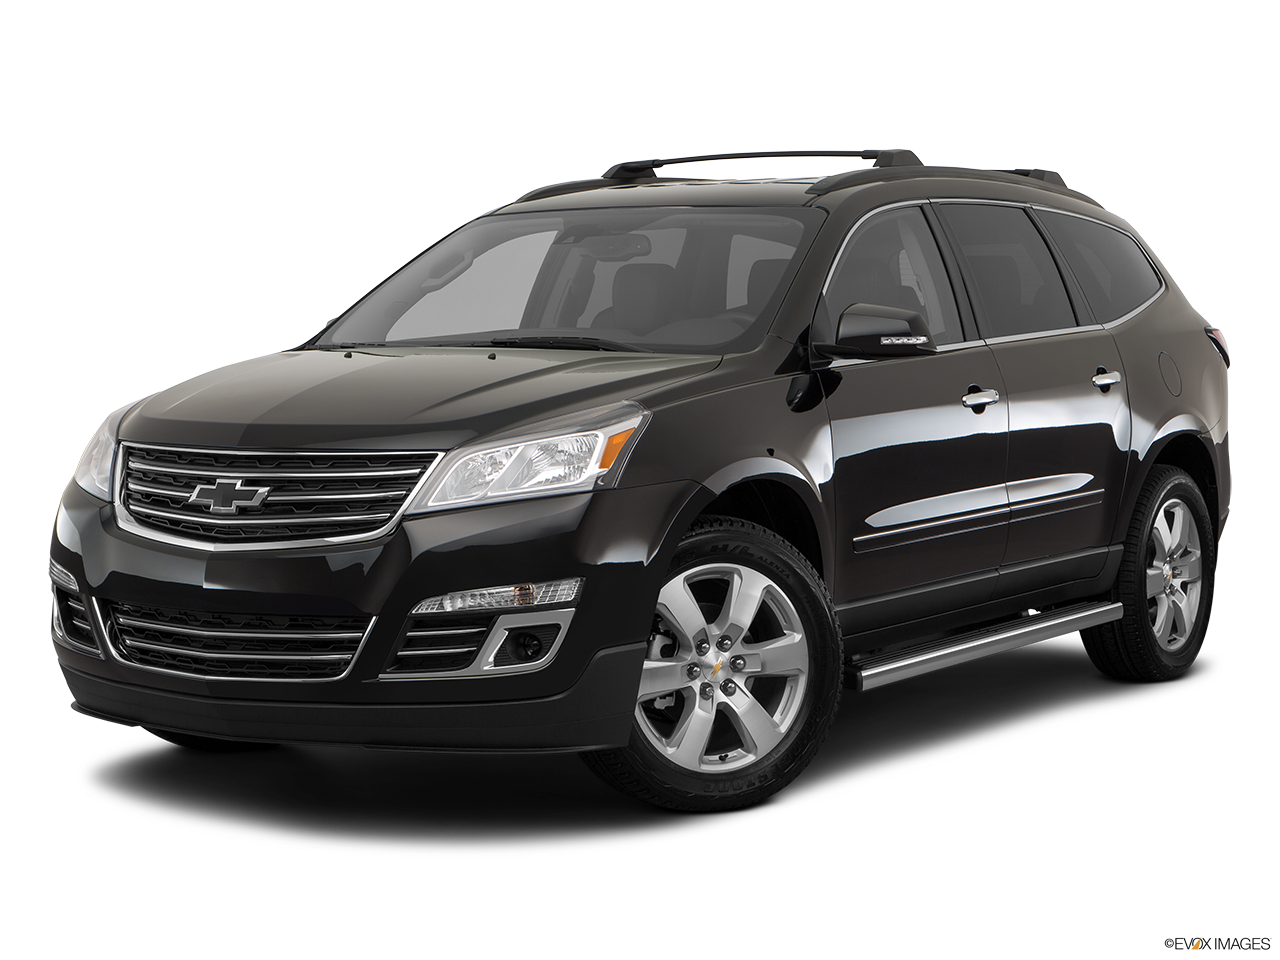 A black 2017 Chevy Traverse is angled left on a white background.